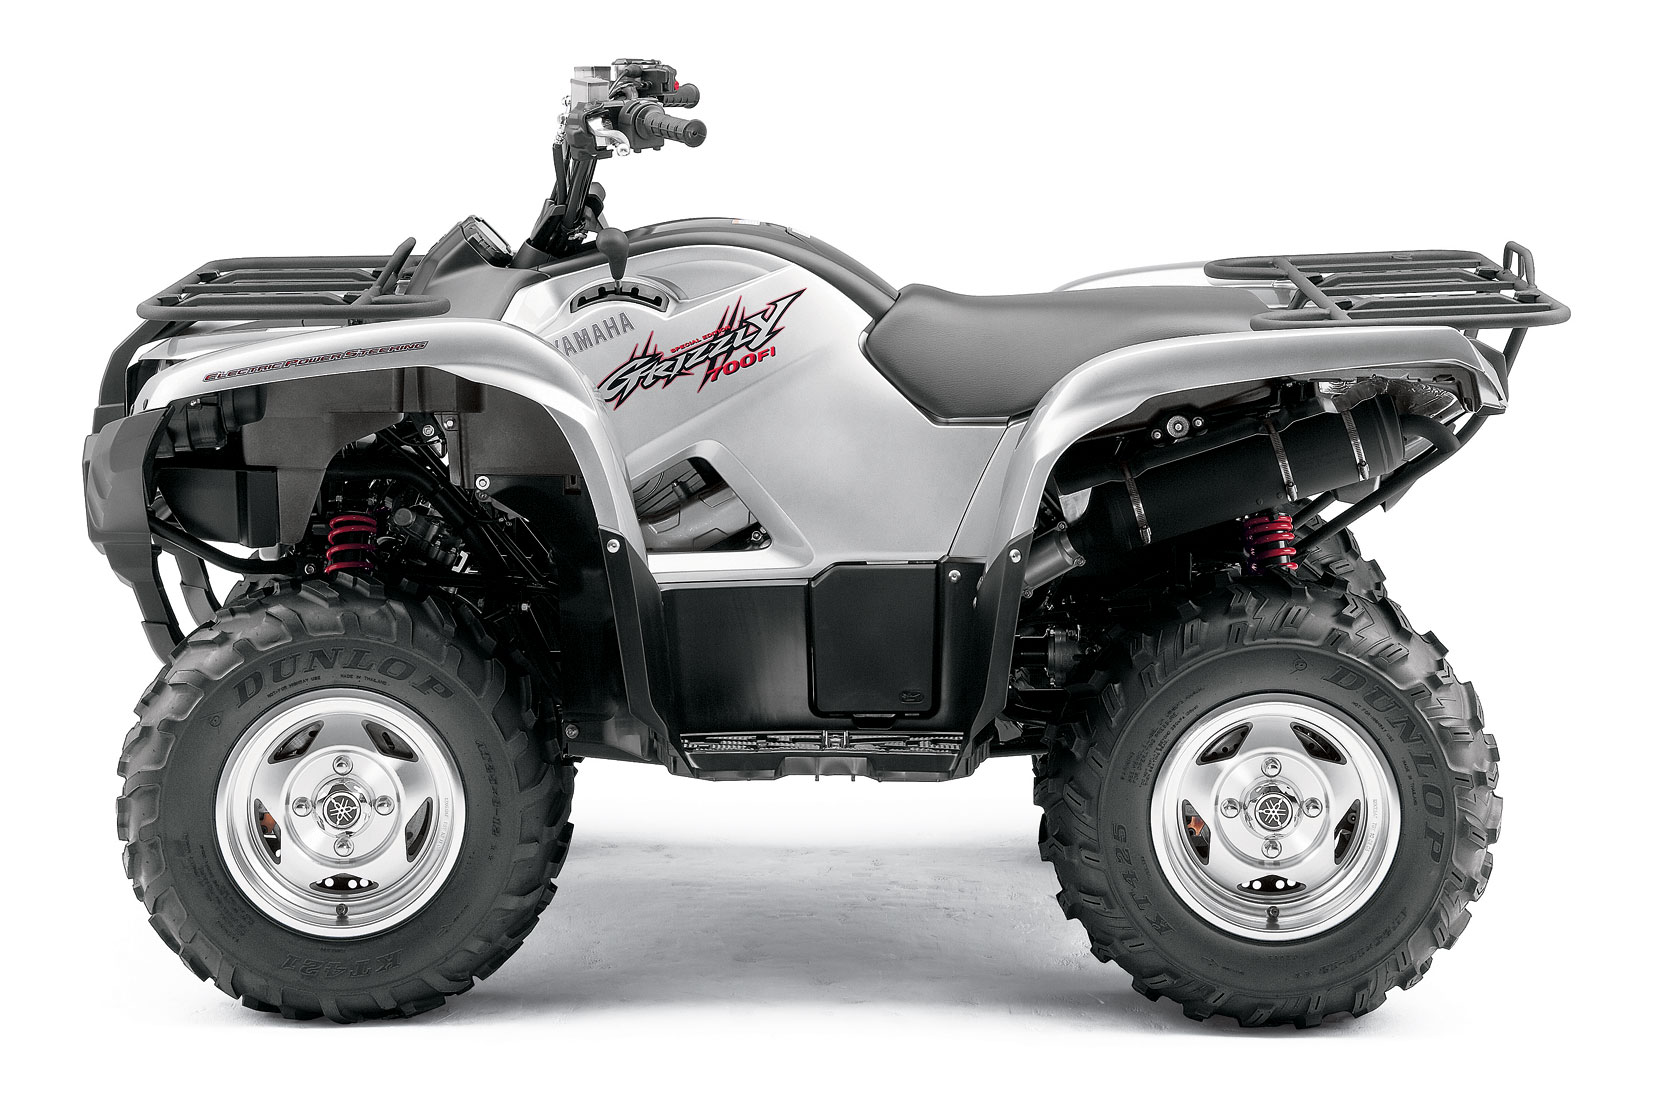 2011 yamaha grizzly 700 fi 4x4 eps special edition for Yamaha grizzly 4x4